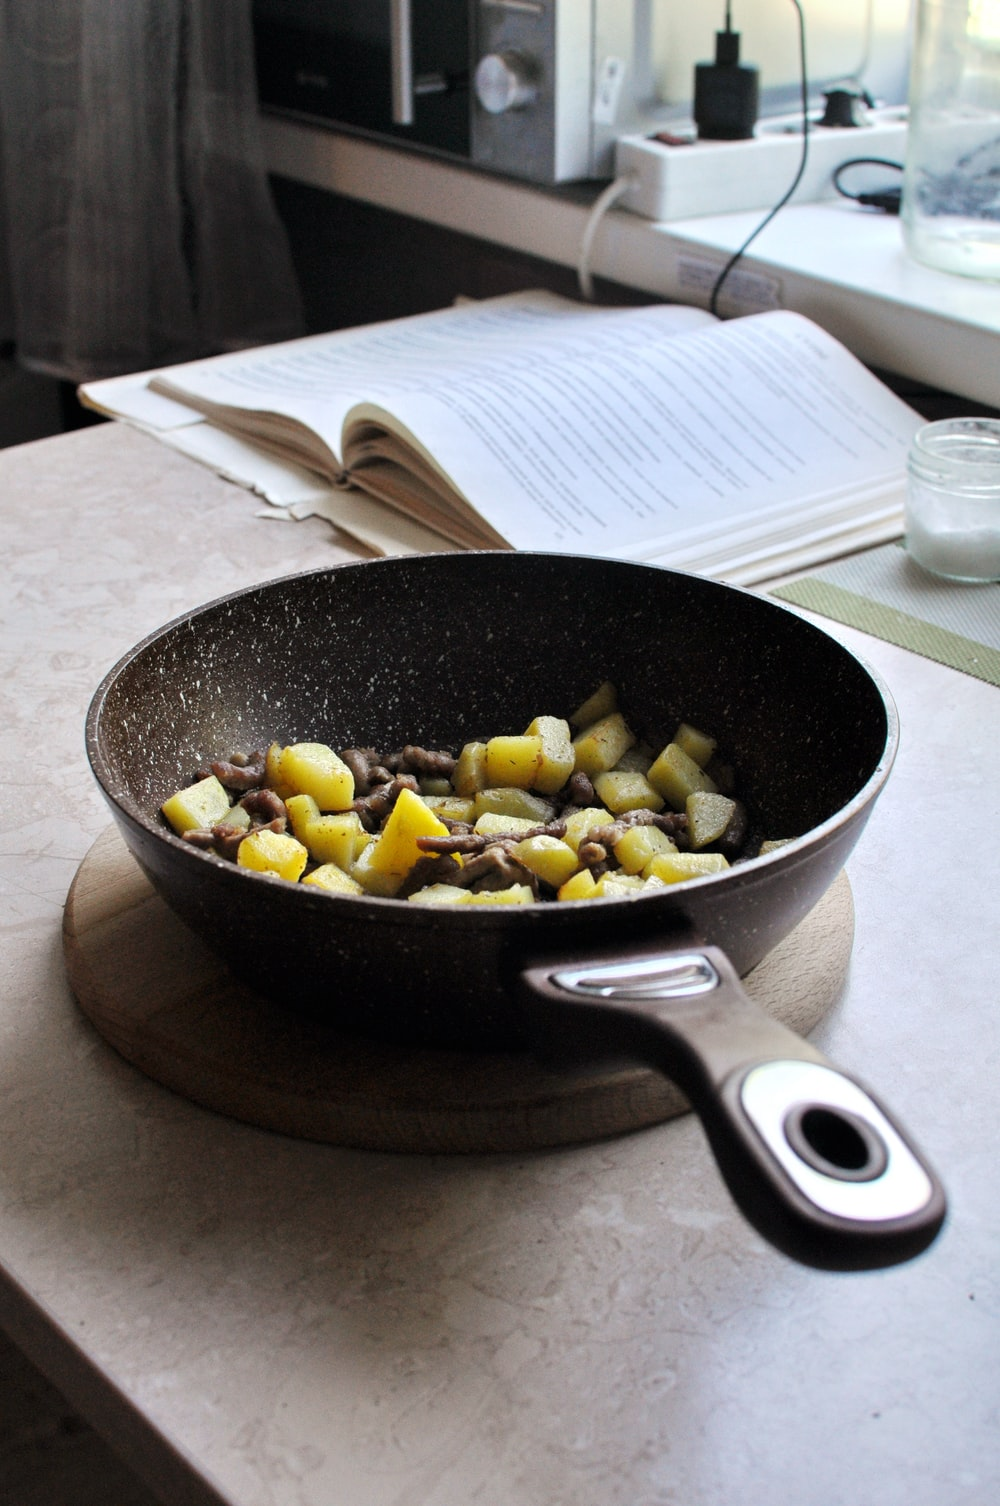 black frying pan with yellow and brown food